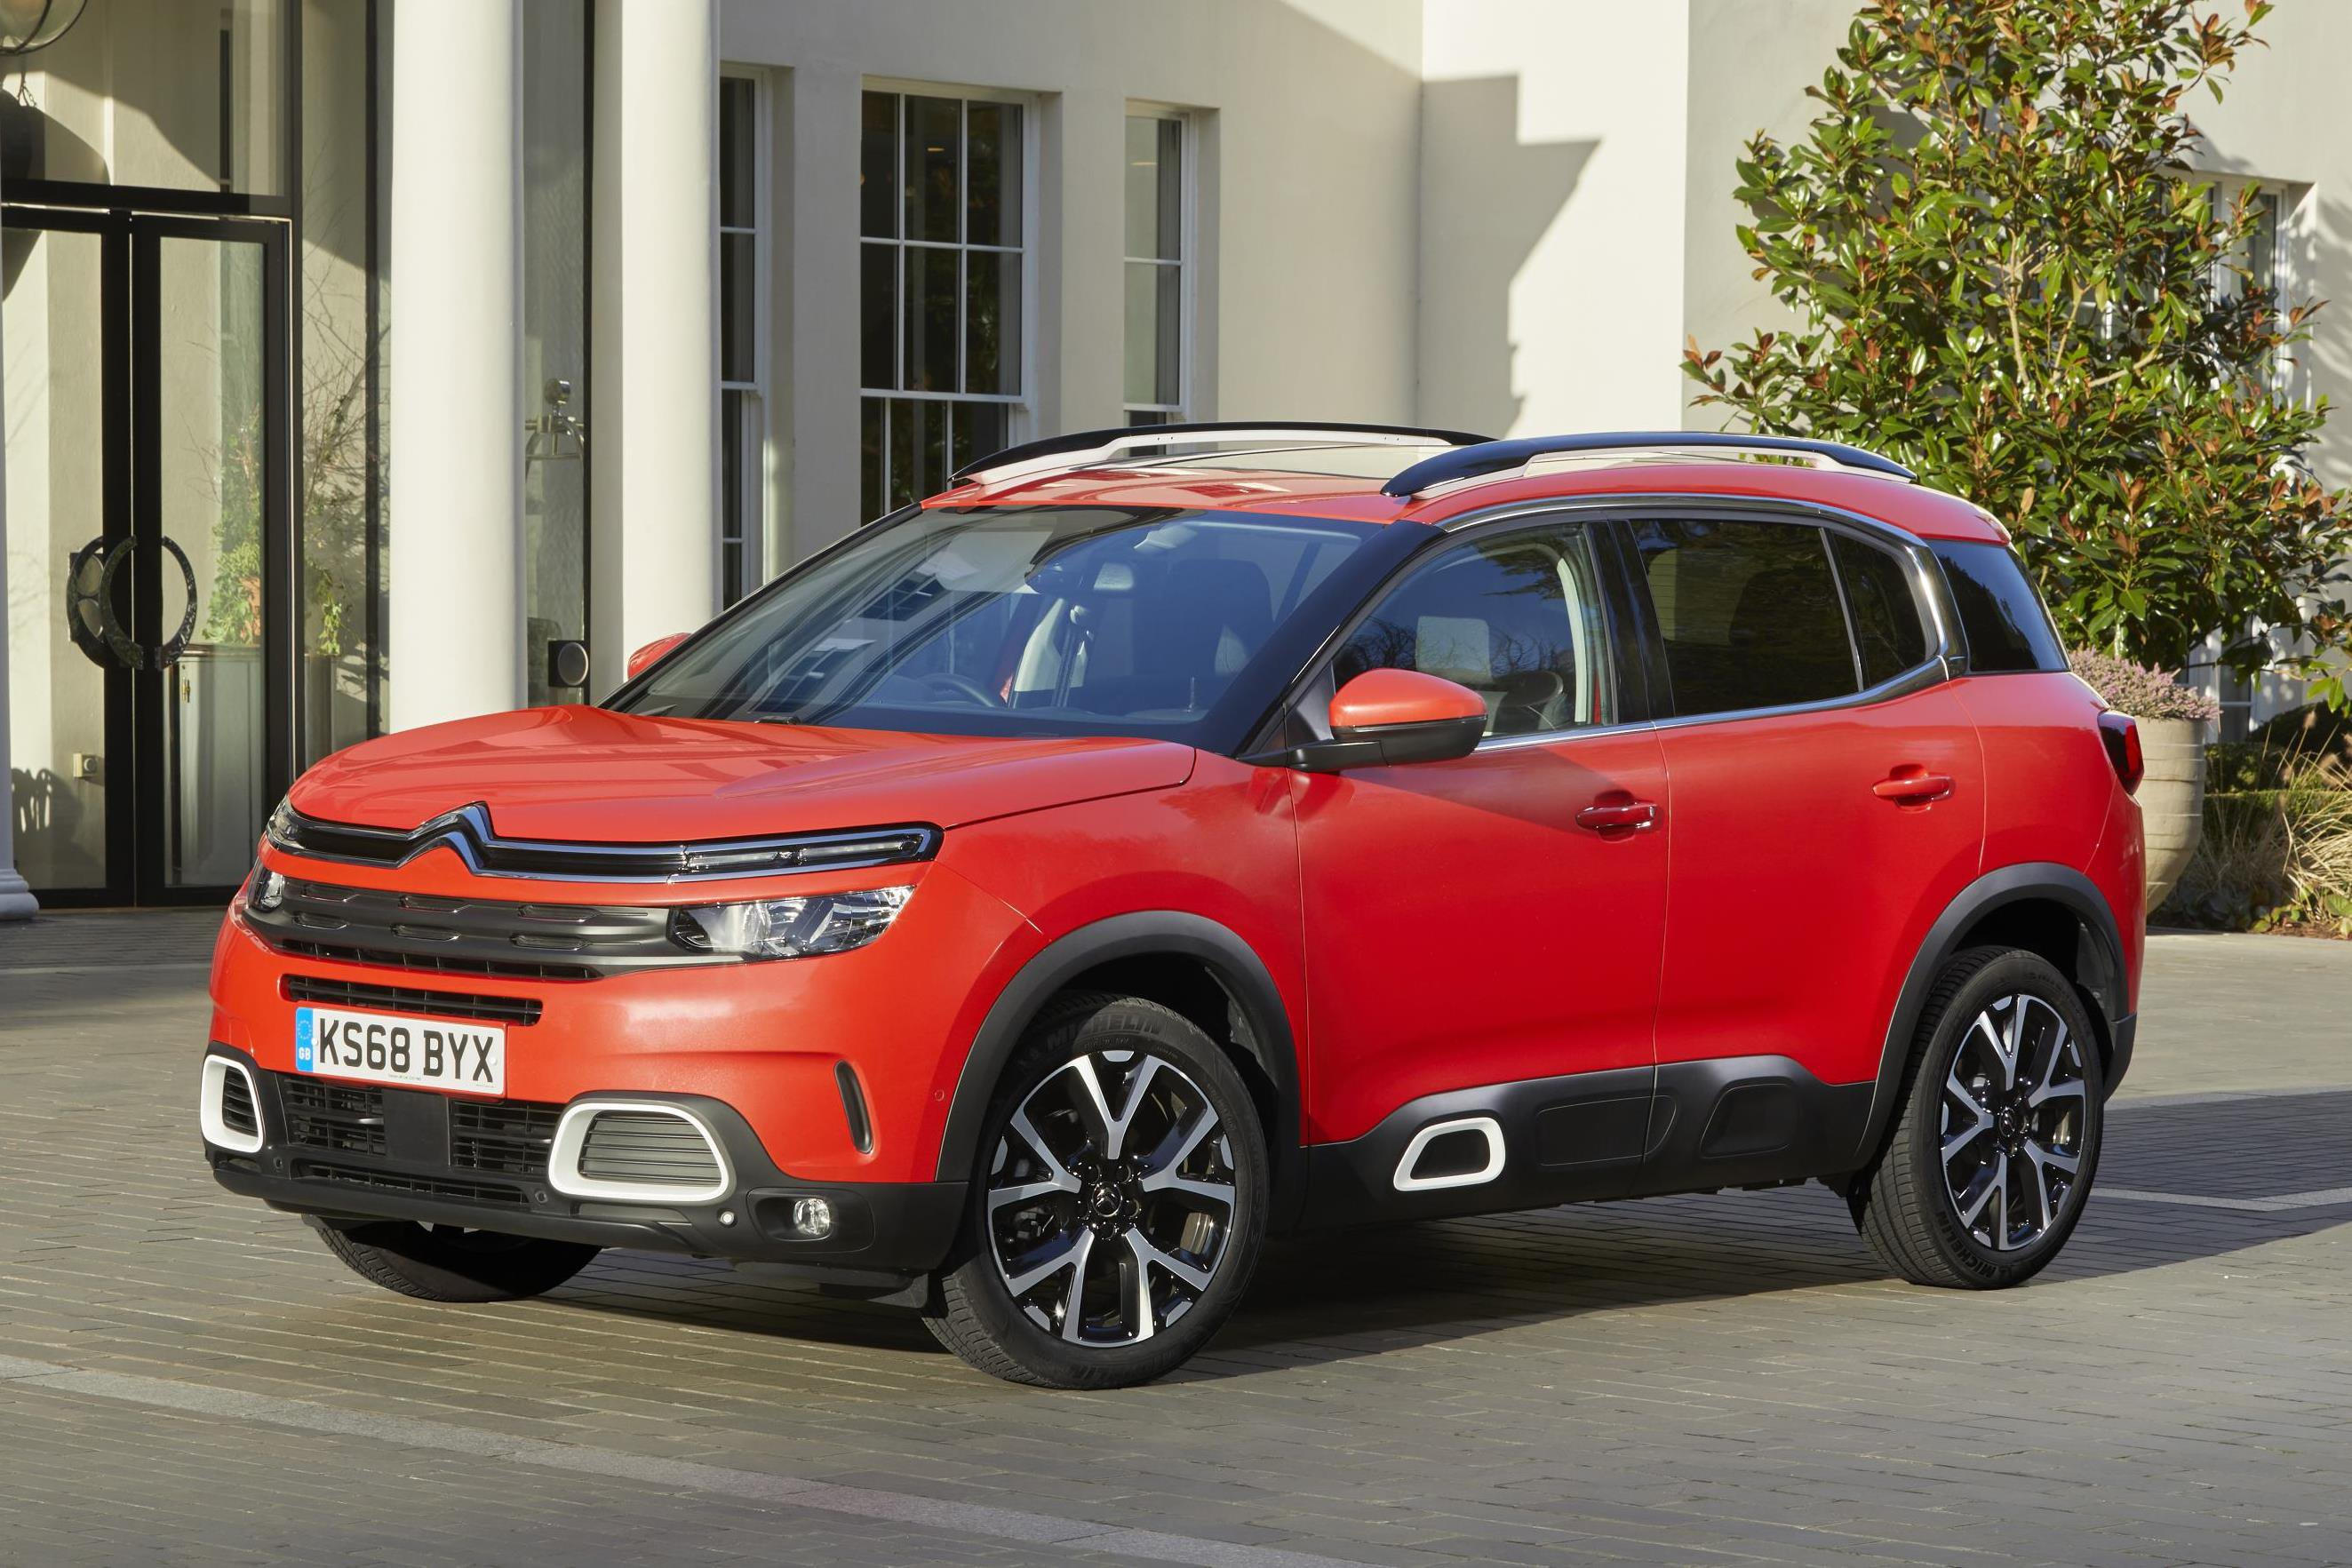 The all-new Citroen C5 Aircross is quite a looker